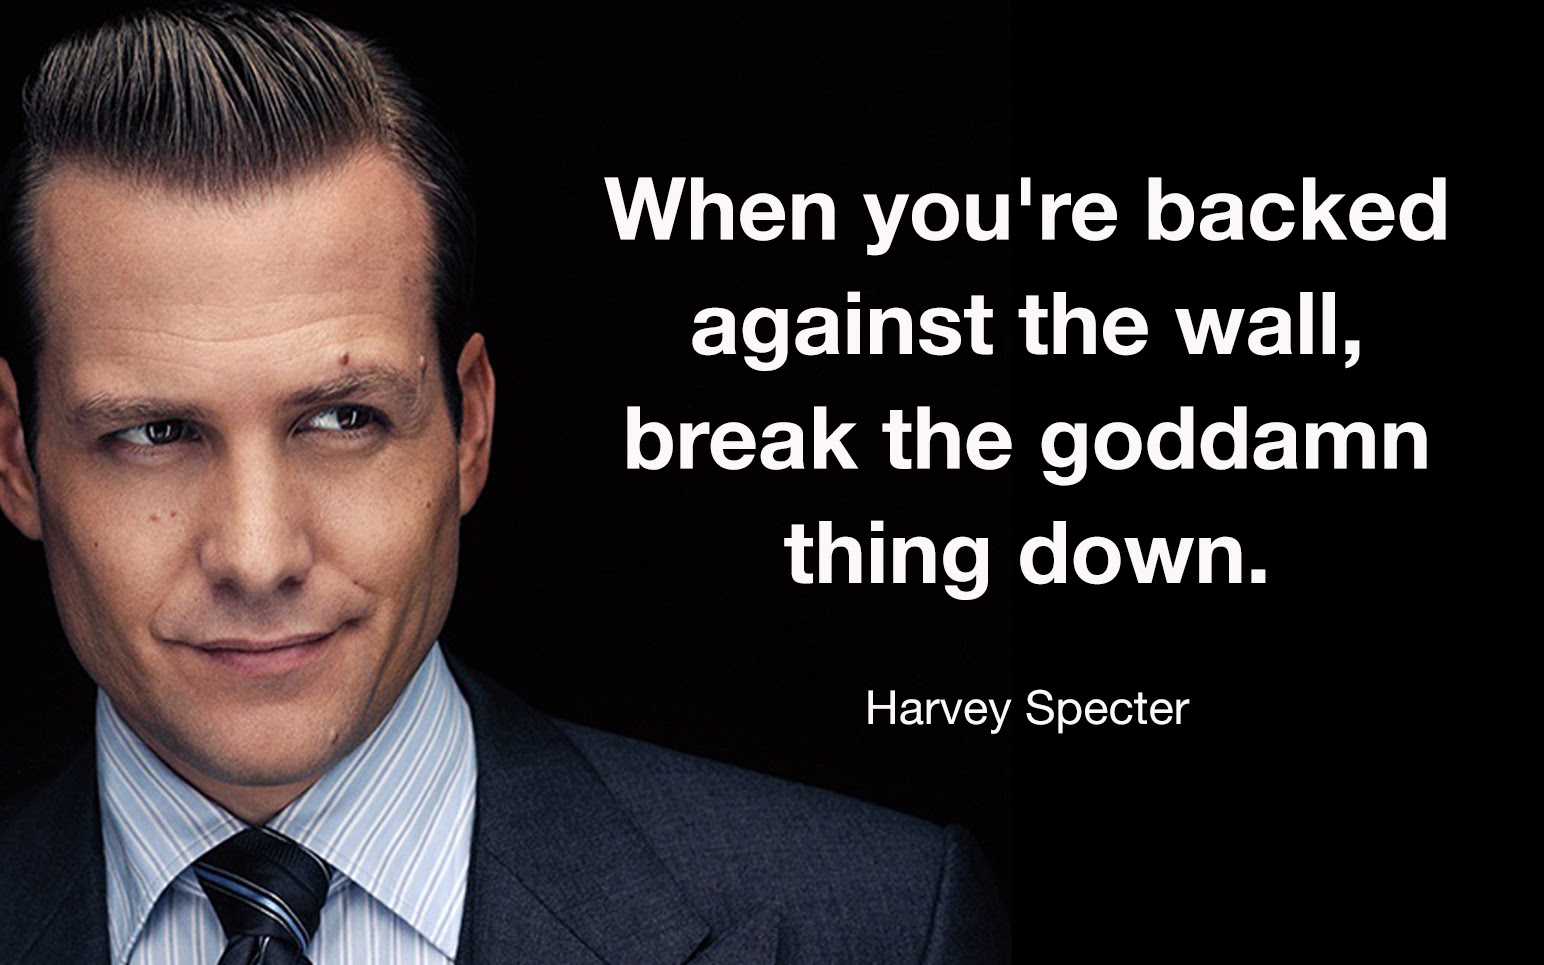 21 Harvey Specter Quotes To Help You Win At Life And